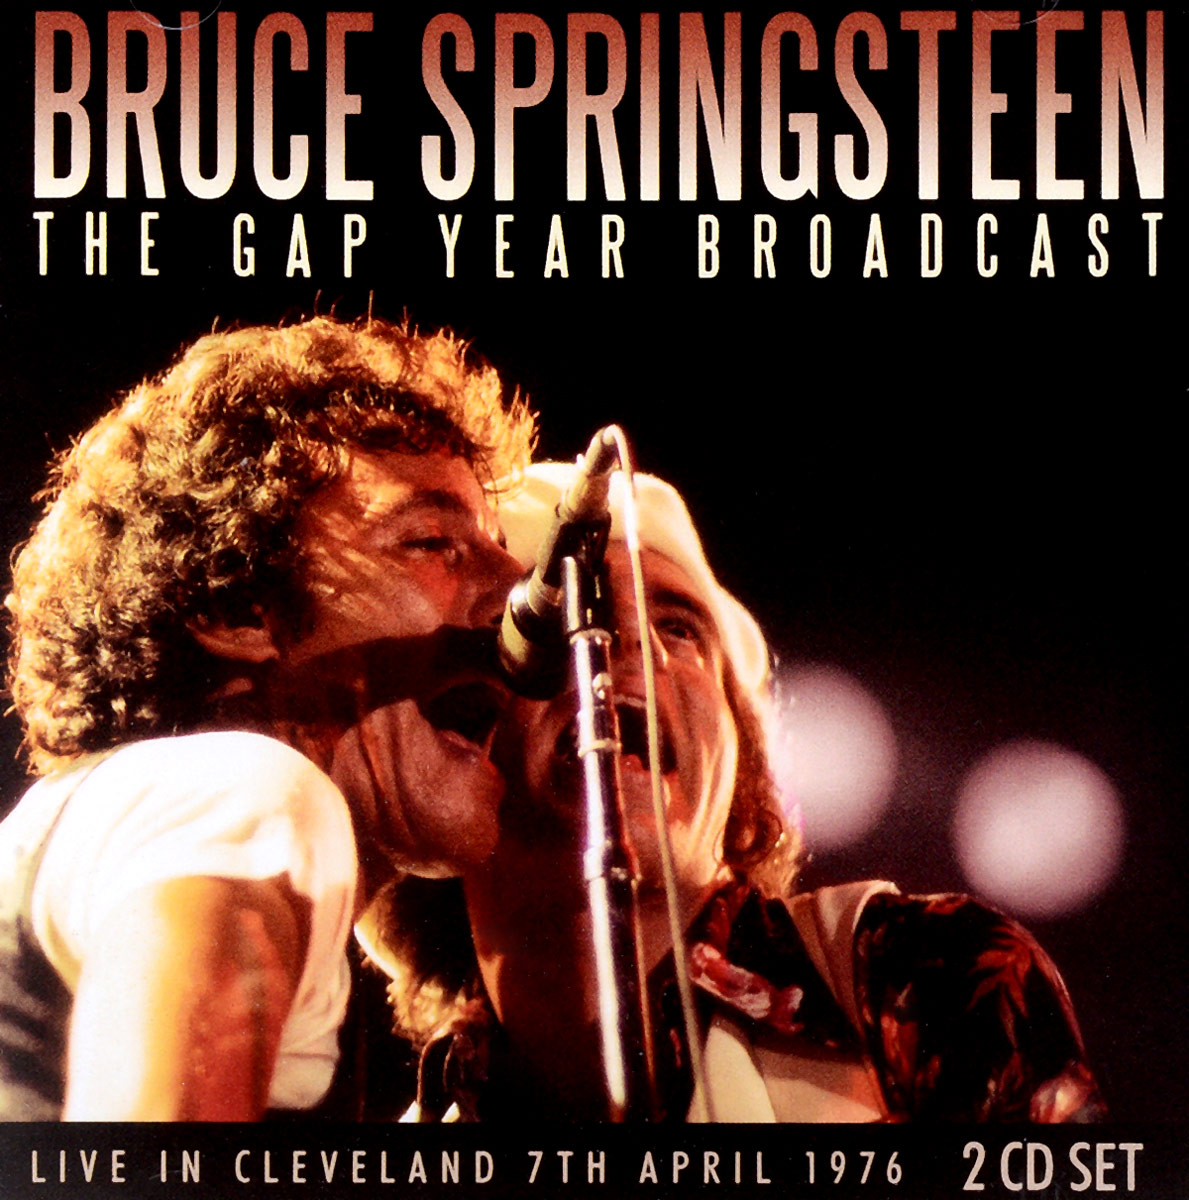 Брюс Спрингстин Bruce Springsteen. The Gap Year Broadcast (2 CD) картридж hp 131a cf213a magenta для laserjet m251 m276